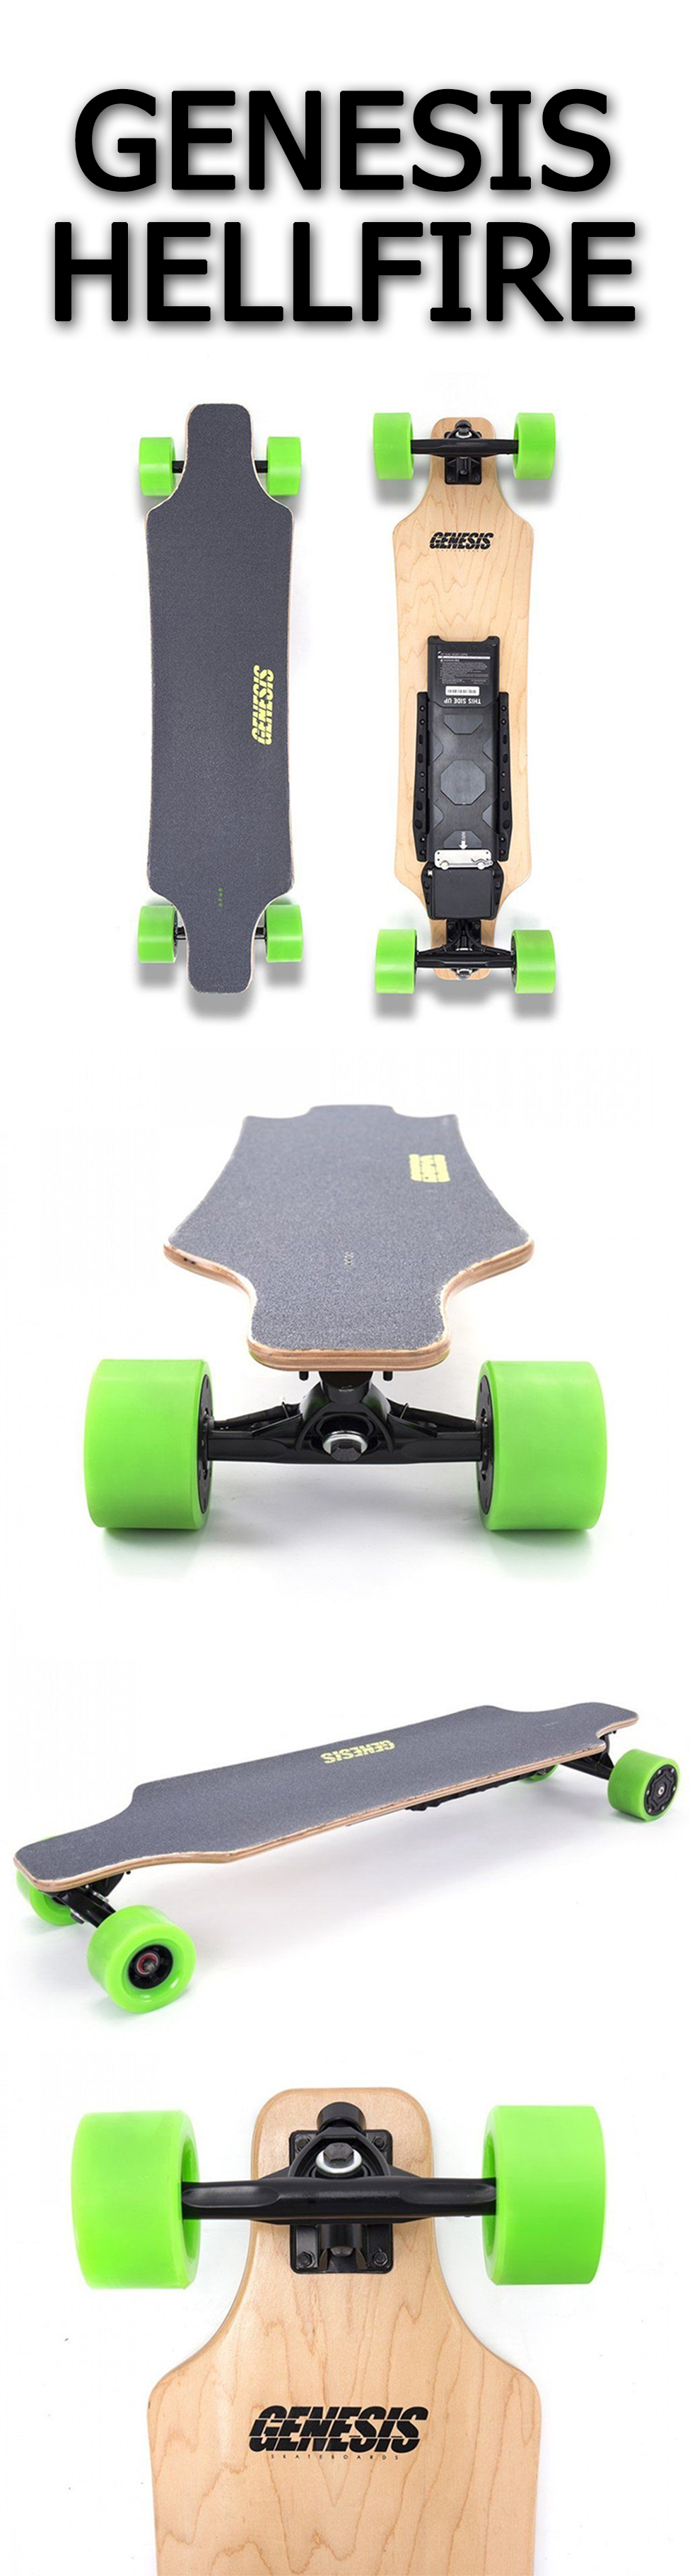 Genesis Hellfire The Genesis Hellfire Is One Of The More Affordable Boards Currently Available Which Might Initially Electric Skateboard Unicycles Fun Sports